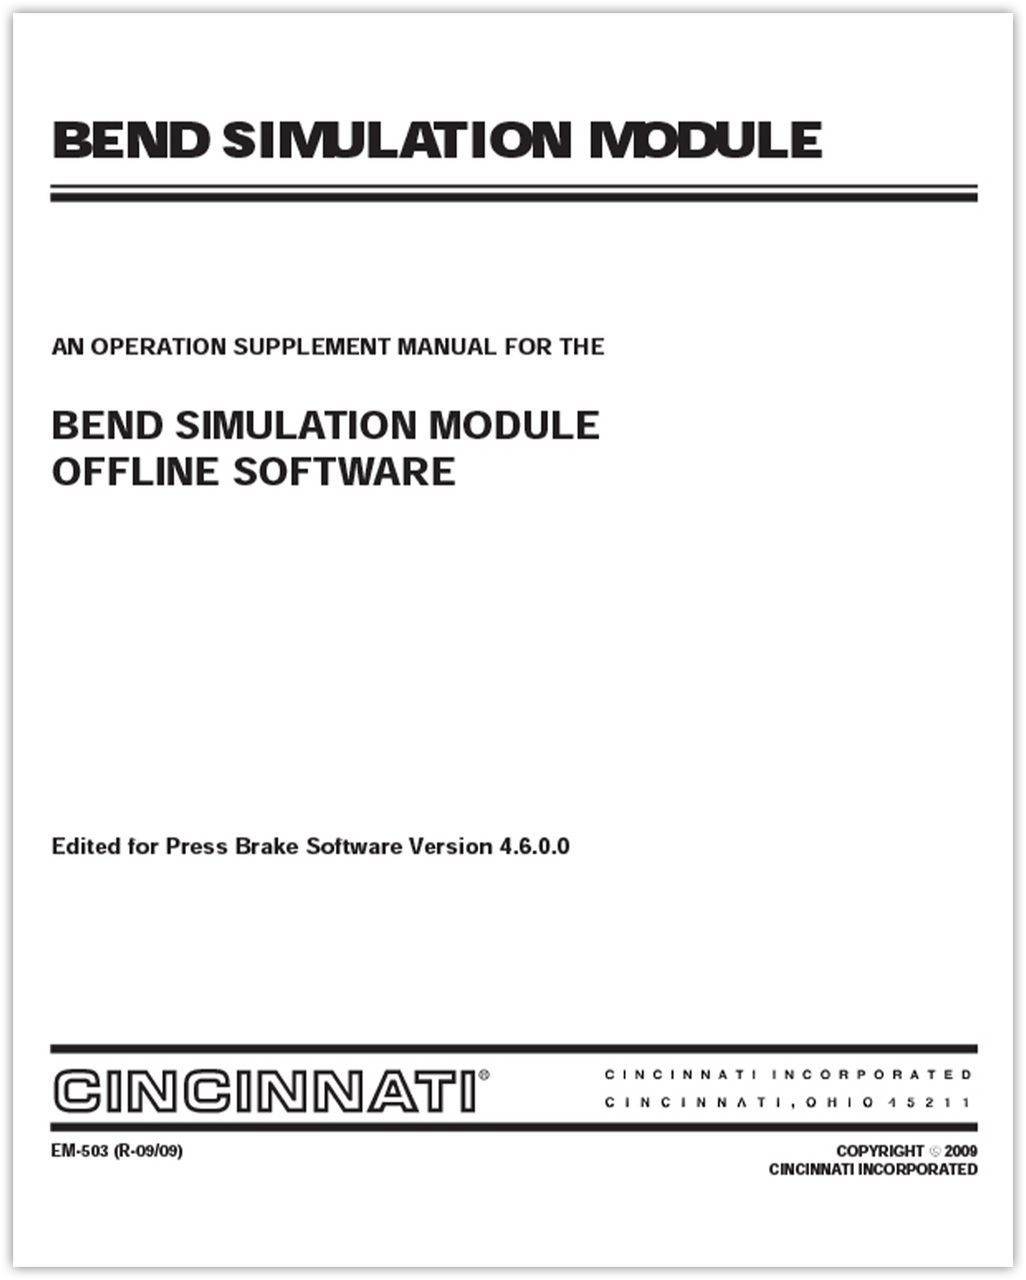 EM-503 Bend Simulation Offline Software (M,N,P,R,S,T,U,V)